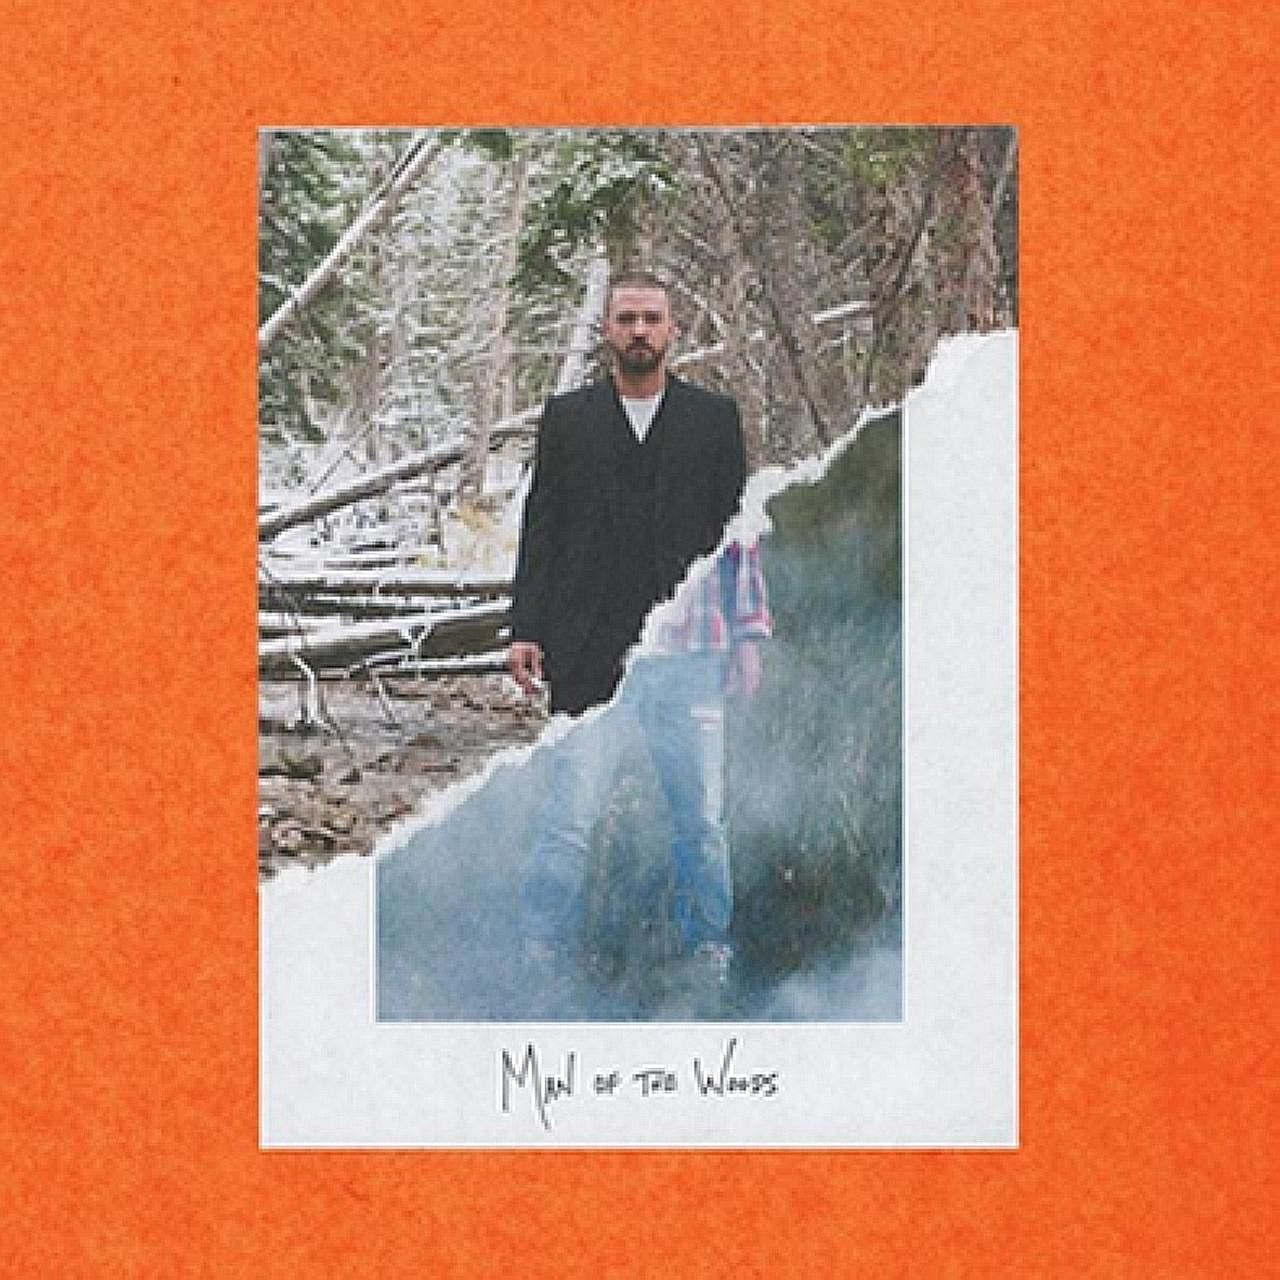 Pop star Justin Timberlake goes a little bit country in his new album Man Of The Woods.